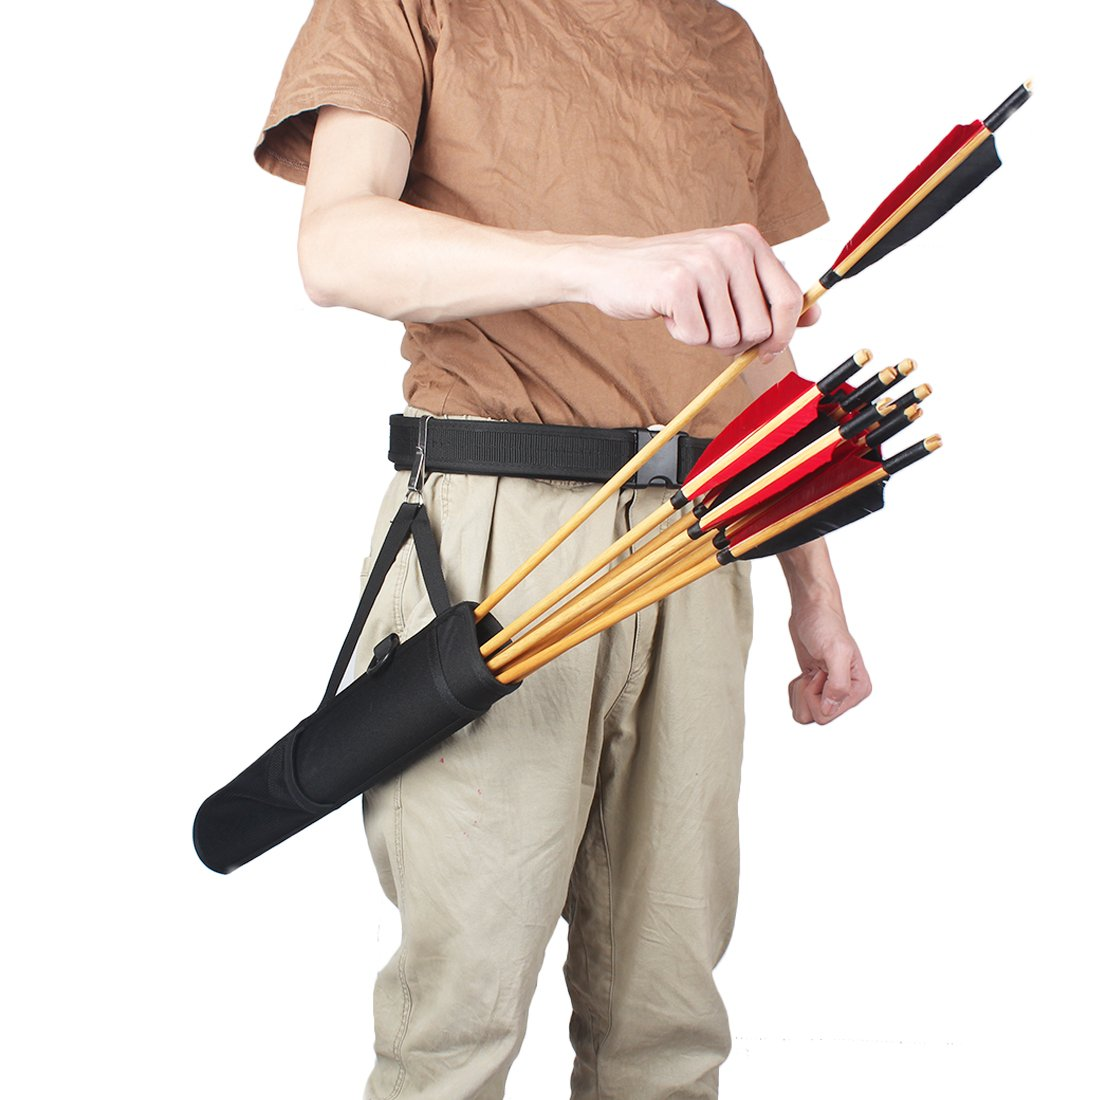 KRATARC Archery Arrows Tube Hip Quiver Waist Hanged Carry Bag (Black- Upgraded version) by KRATARC (Image #8)